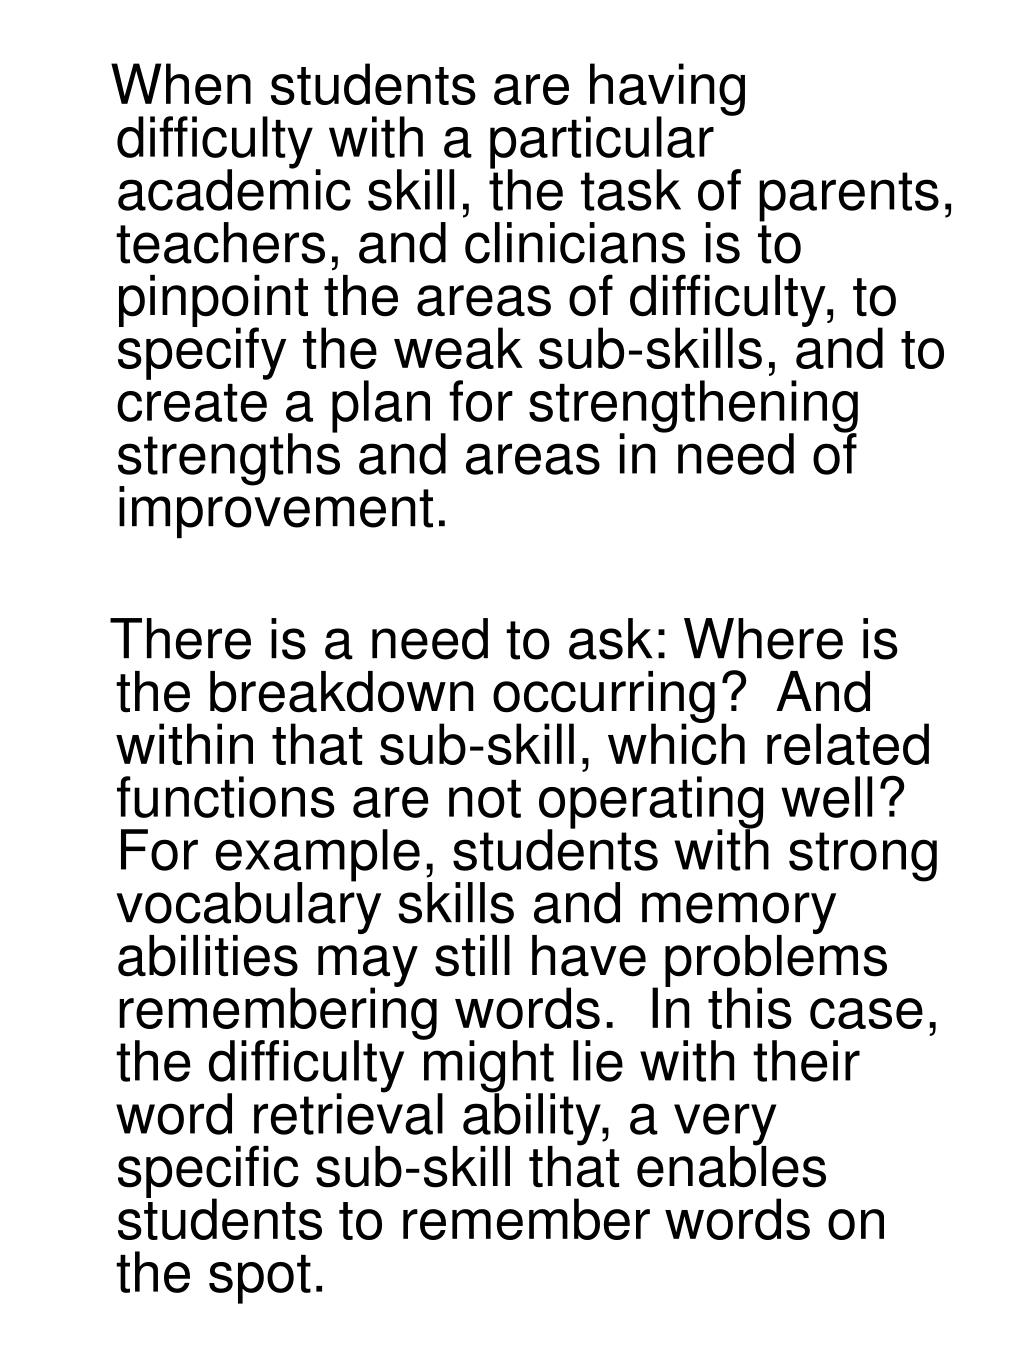 When students are having difficulty with a particular academic skill, the task of parents, teachers, and clinicians is to pinpoint the areas of difficulty, to specify the weak sub-skills, and to create a plan for strengthening strengths and areas in need of improvement.